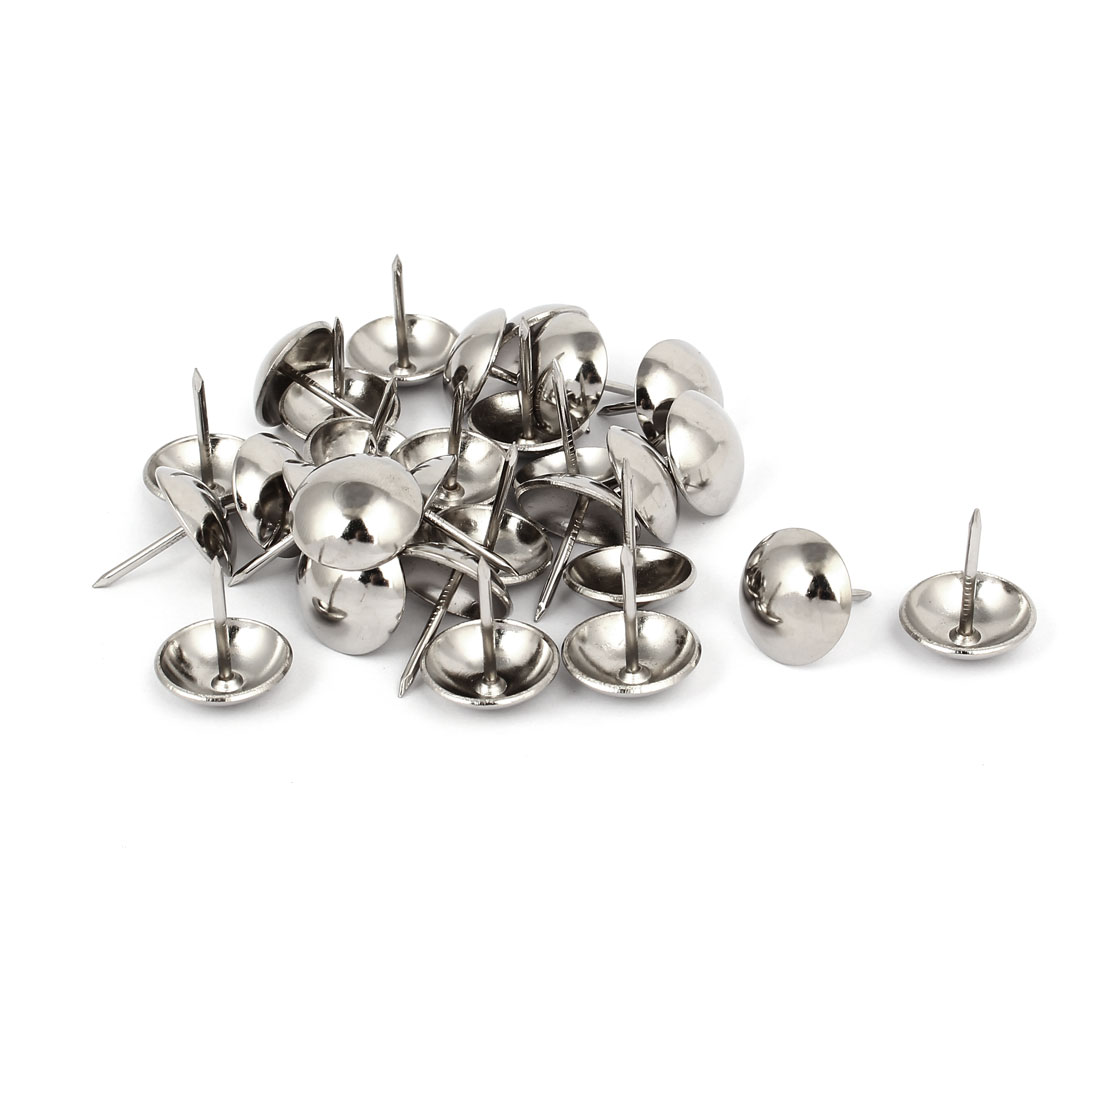 Home Metal Round Domed Head Upholstery Tack Nail Silver Tone 19mm Dia 30pcs